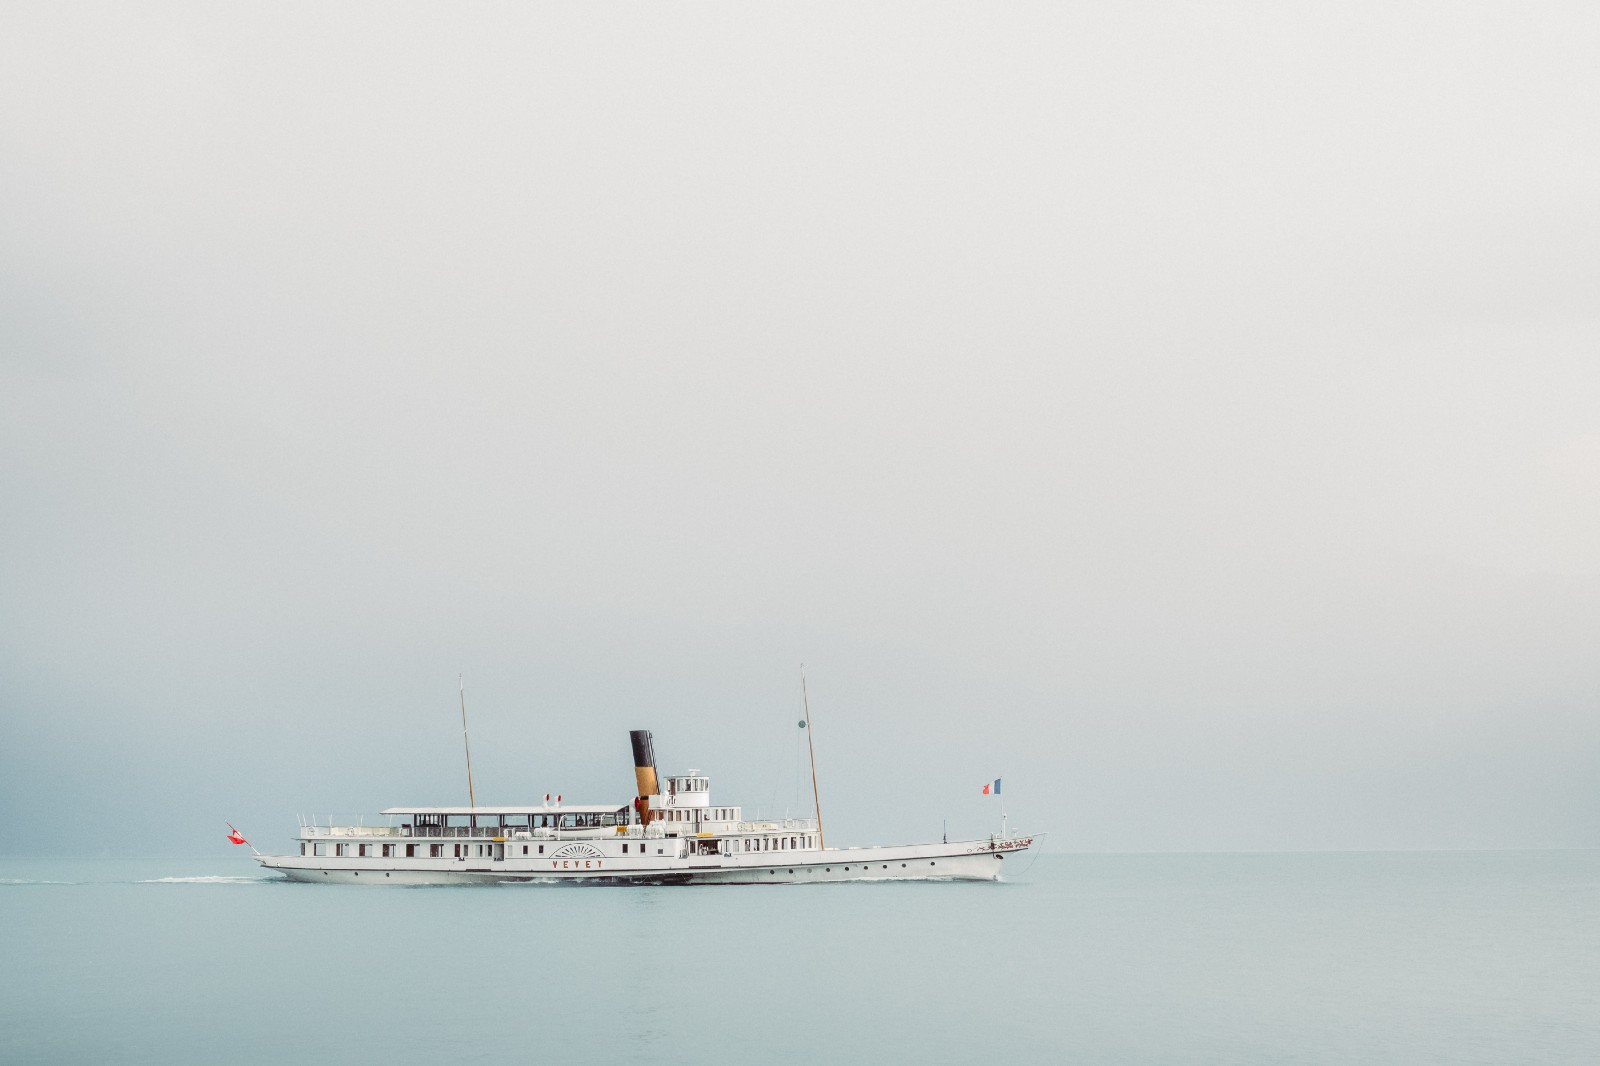 Boat in smooth waters